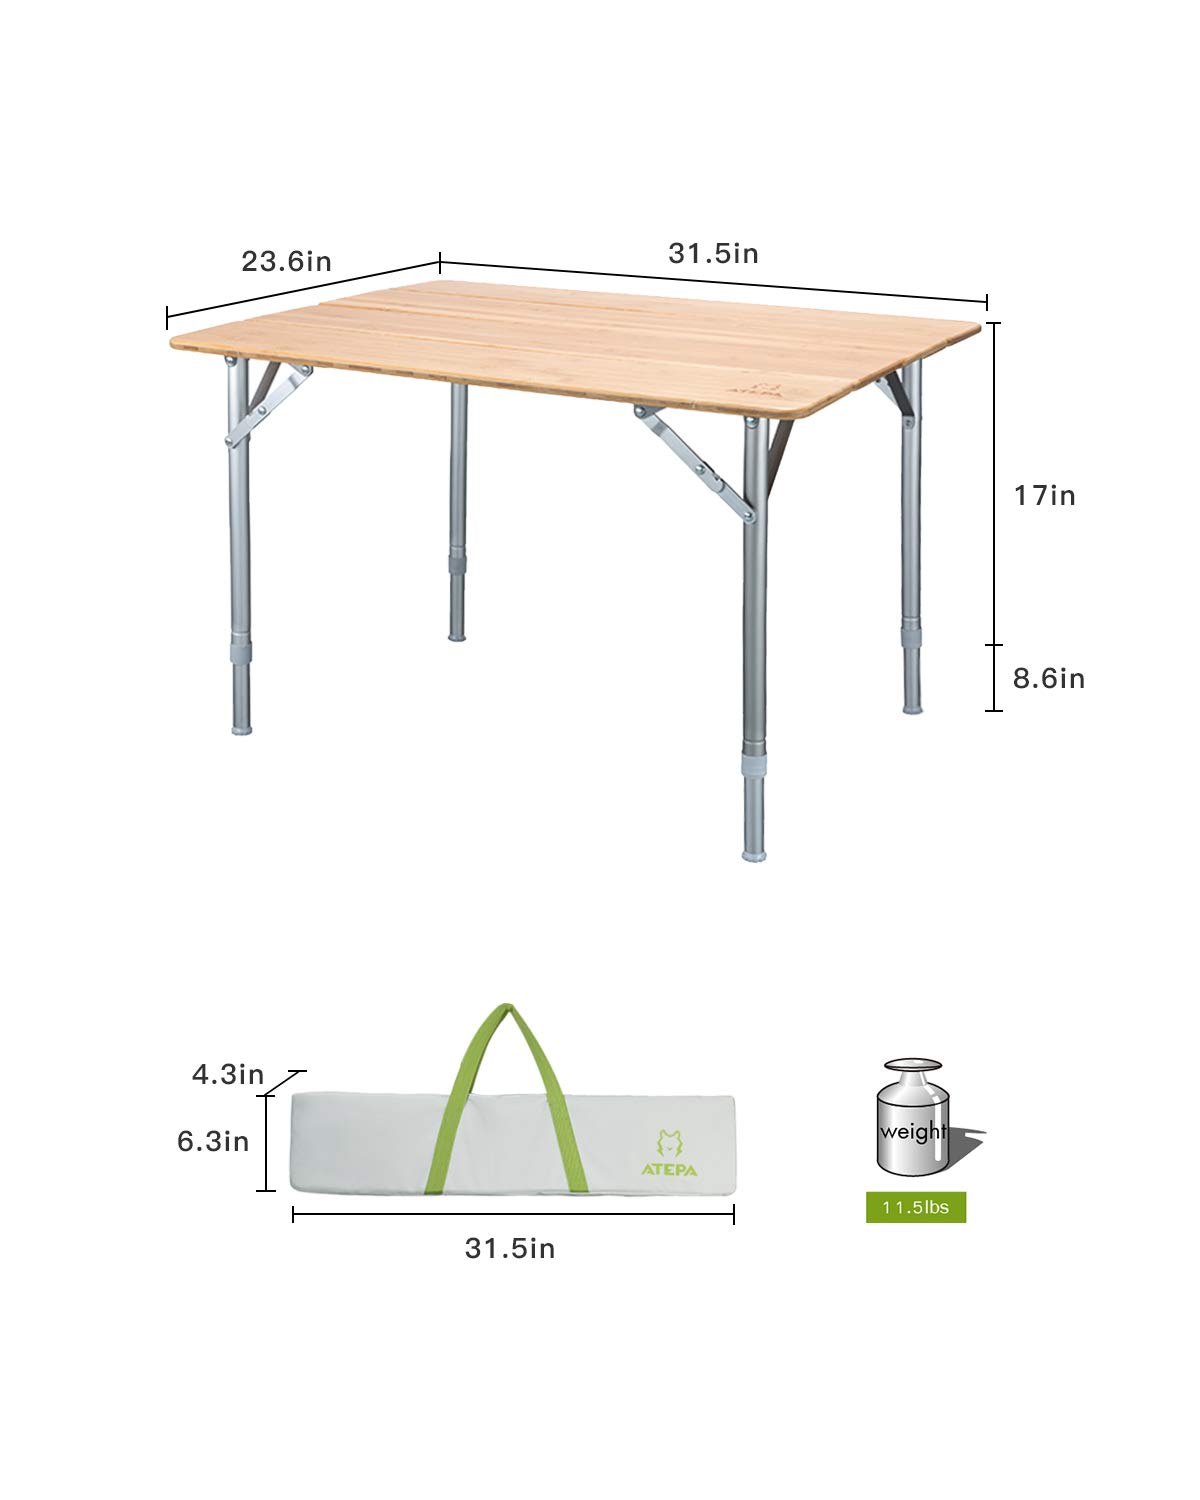 ATEPA Bamboo Folding Camping Table with Carrying Bag, Adjustable Height Legs Camp Table, Compact Lightweight Foldable Portable Outdoor Travel Picnic Table, 31.5 23.6 17-25.6 Inches,11.5lbs